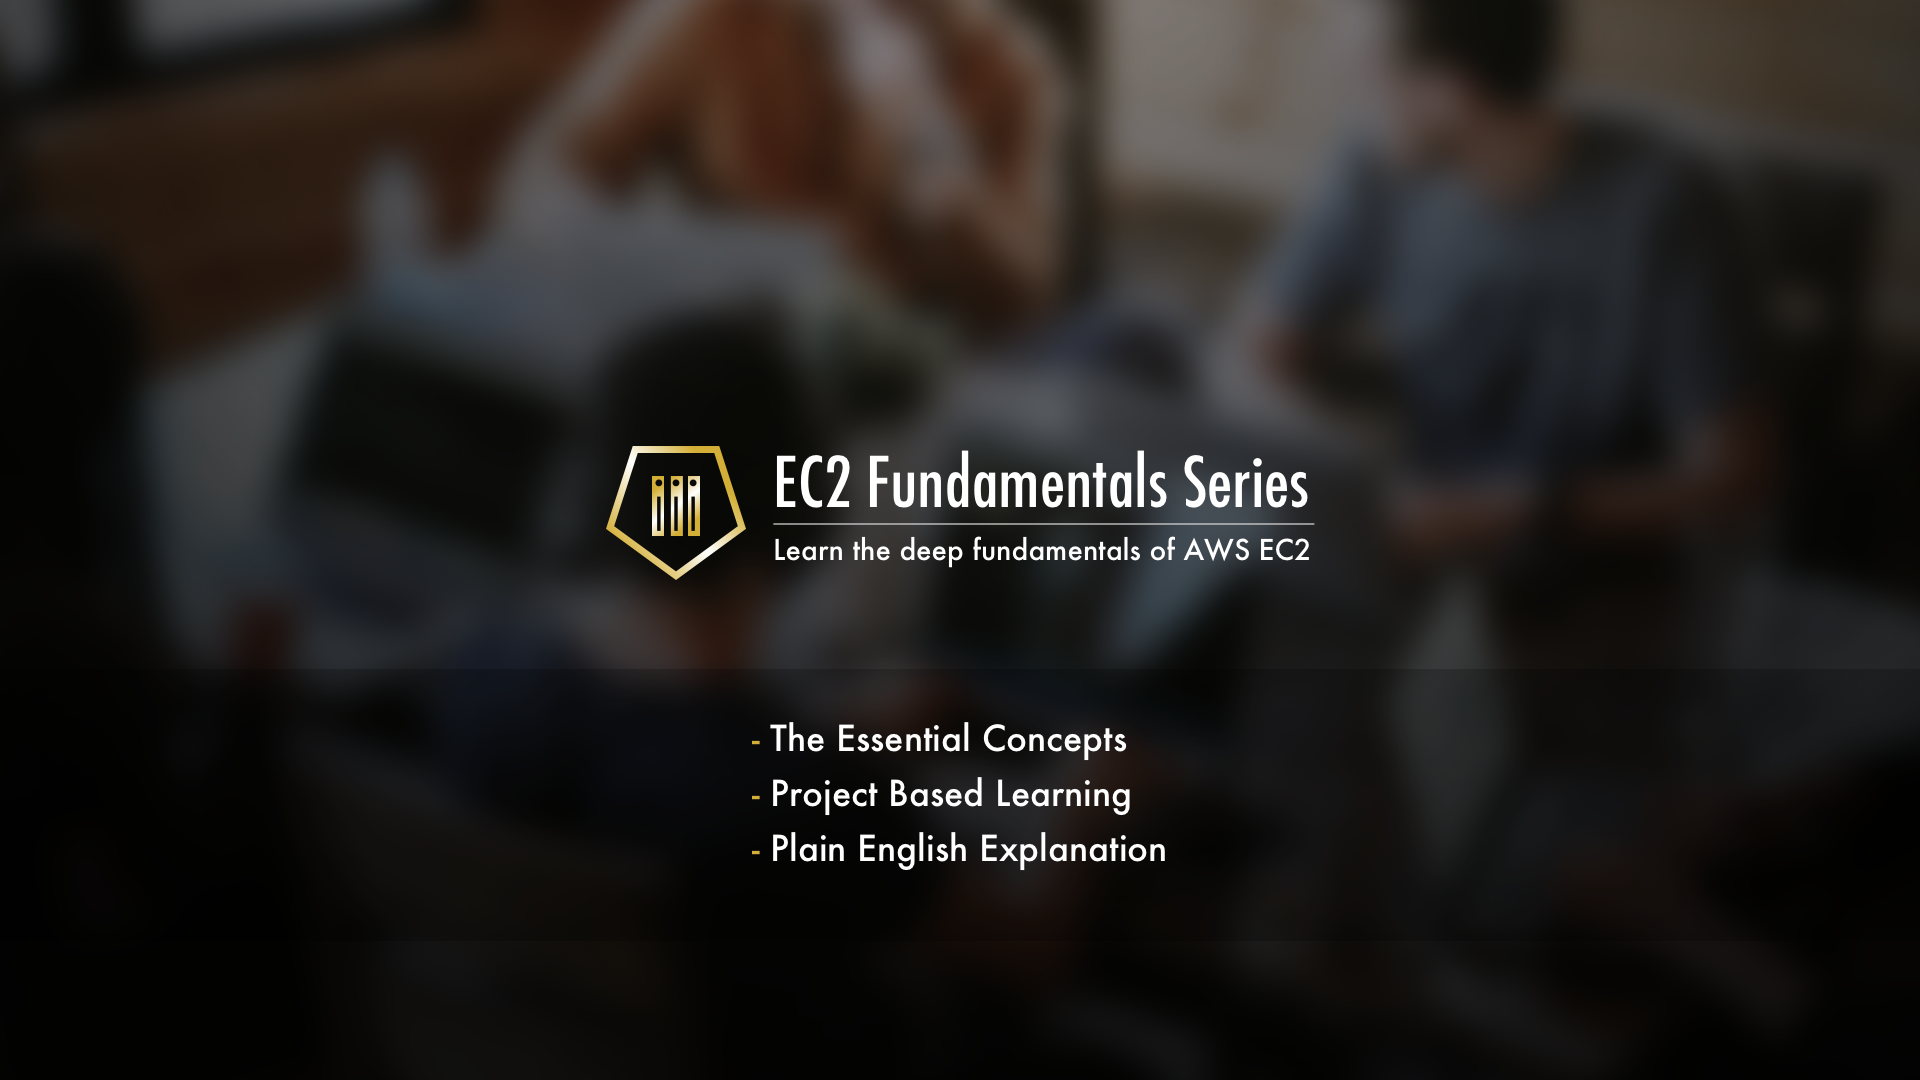 Learn the deep fundamentals of AWS EC2